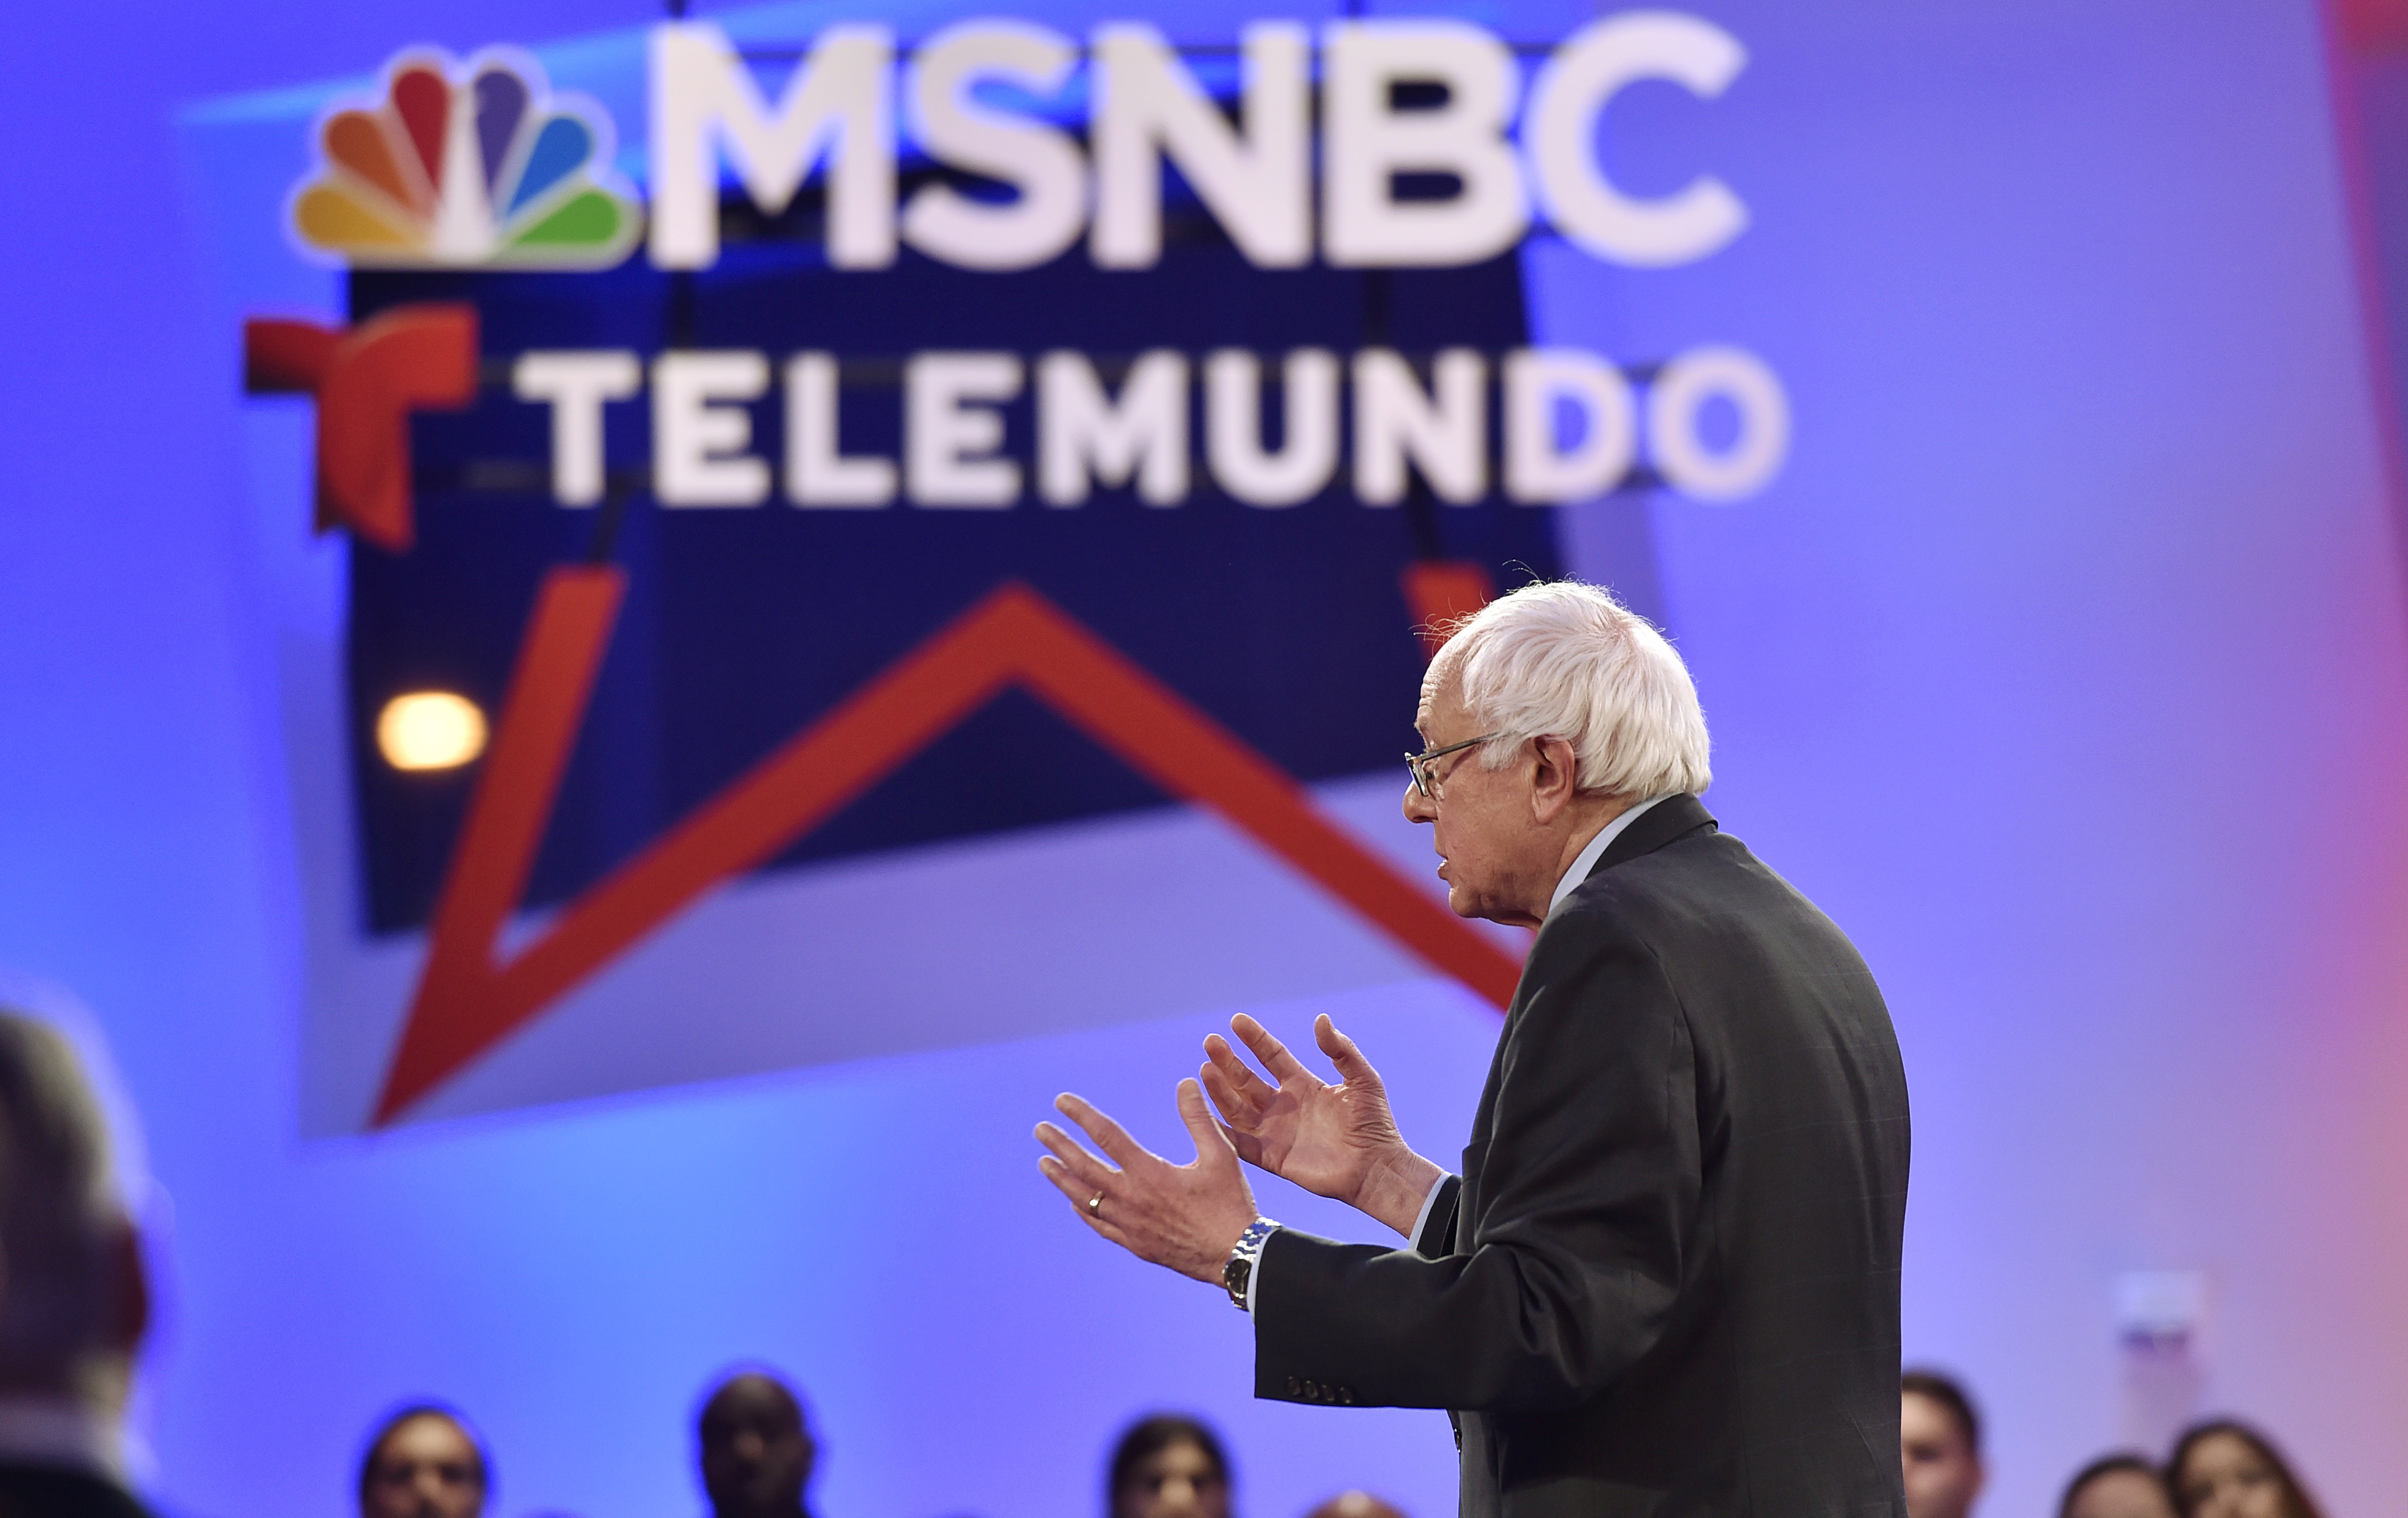 U.S. Democratic presidential candidate Bernie Sanders addreses the audience during a campaign town hall hosted by MSNBC and Telemundo in Las Vegas